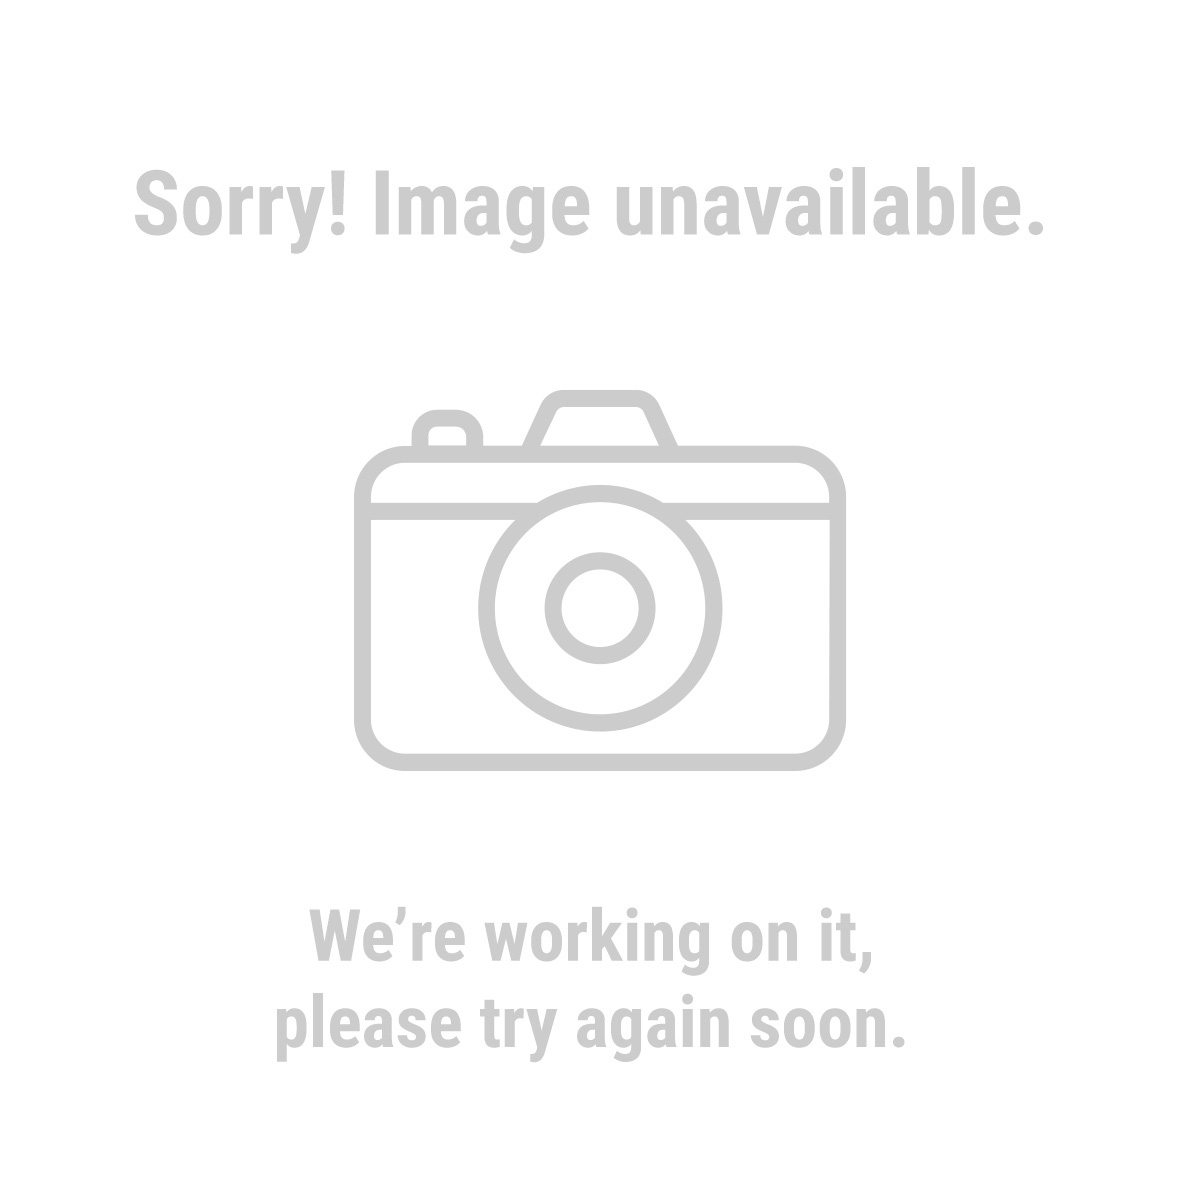 90976 7 Piece Grinder Brush Kit